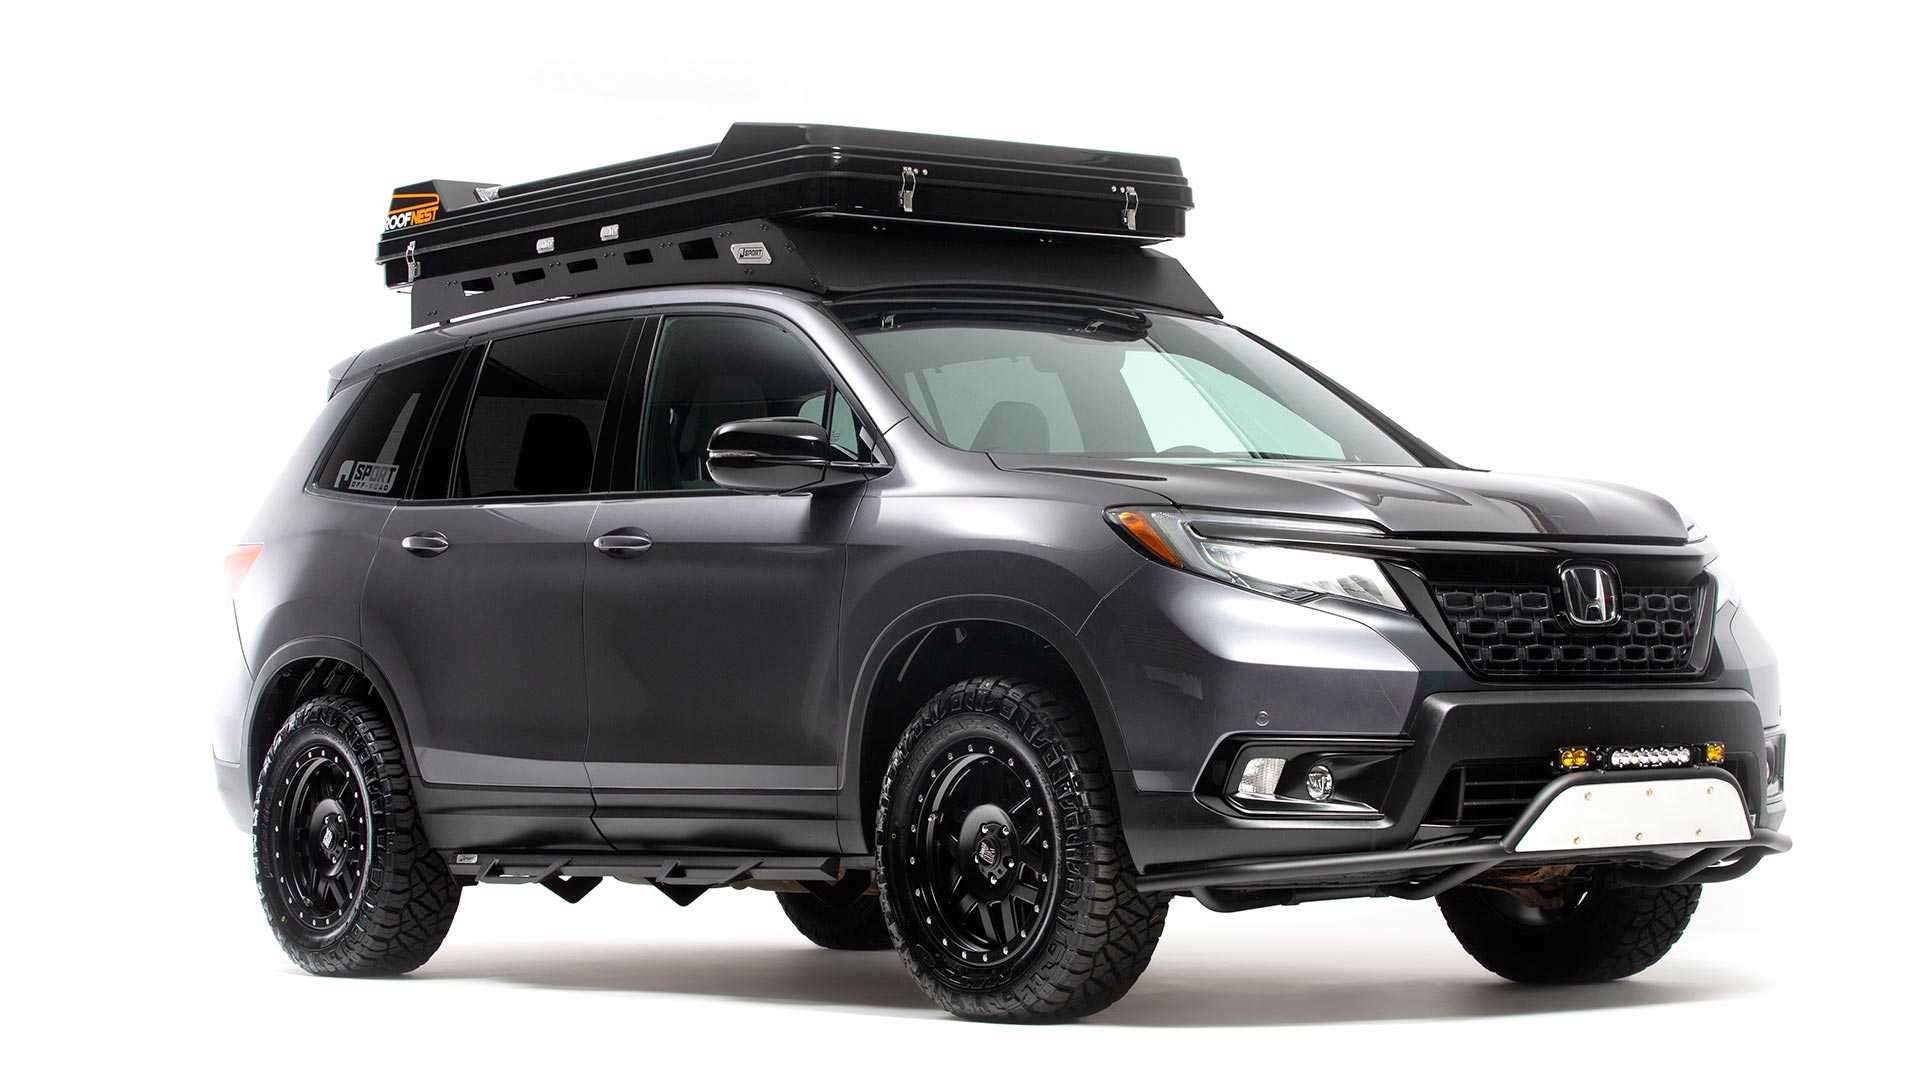 Looks like changes are coming to honda's crossover lineup. Honda Adds Adventure To the Passport, Ridgeline For 2019